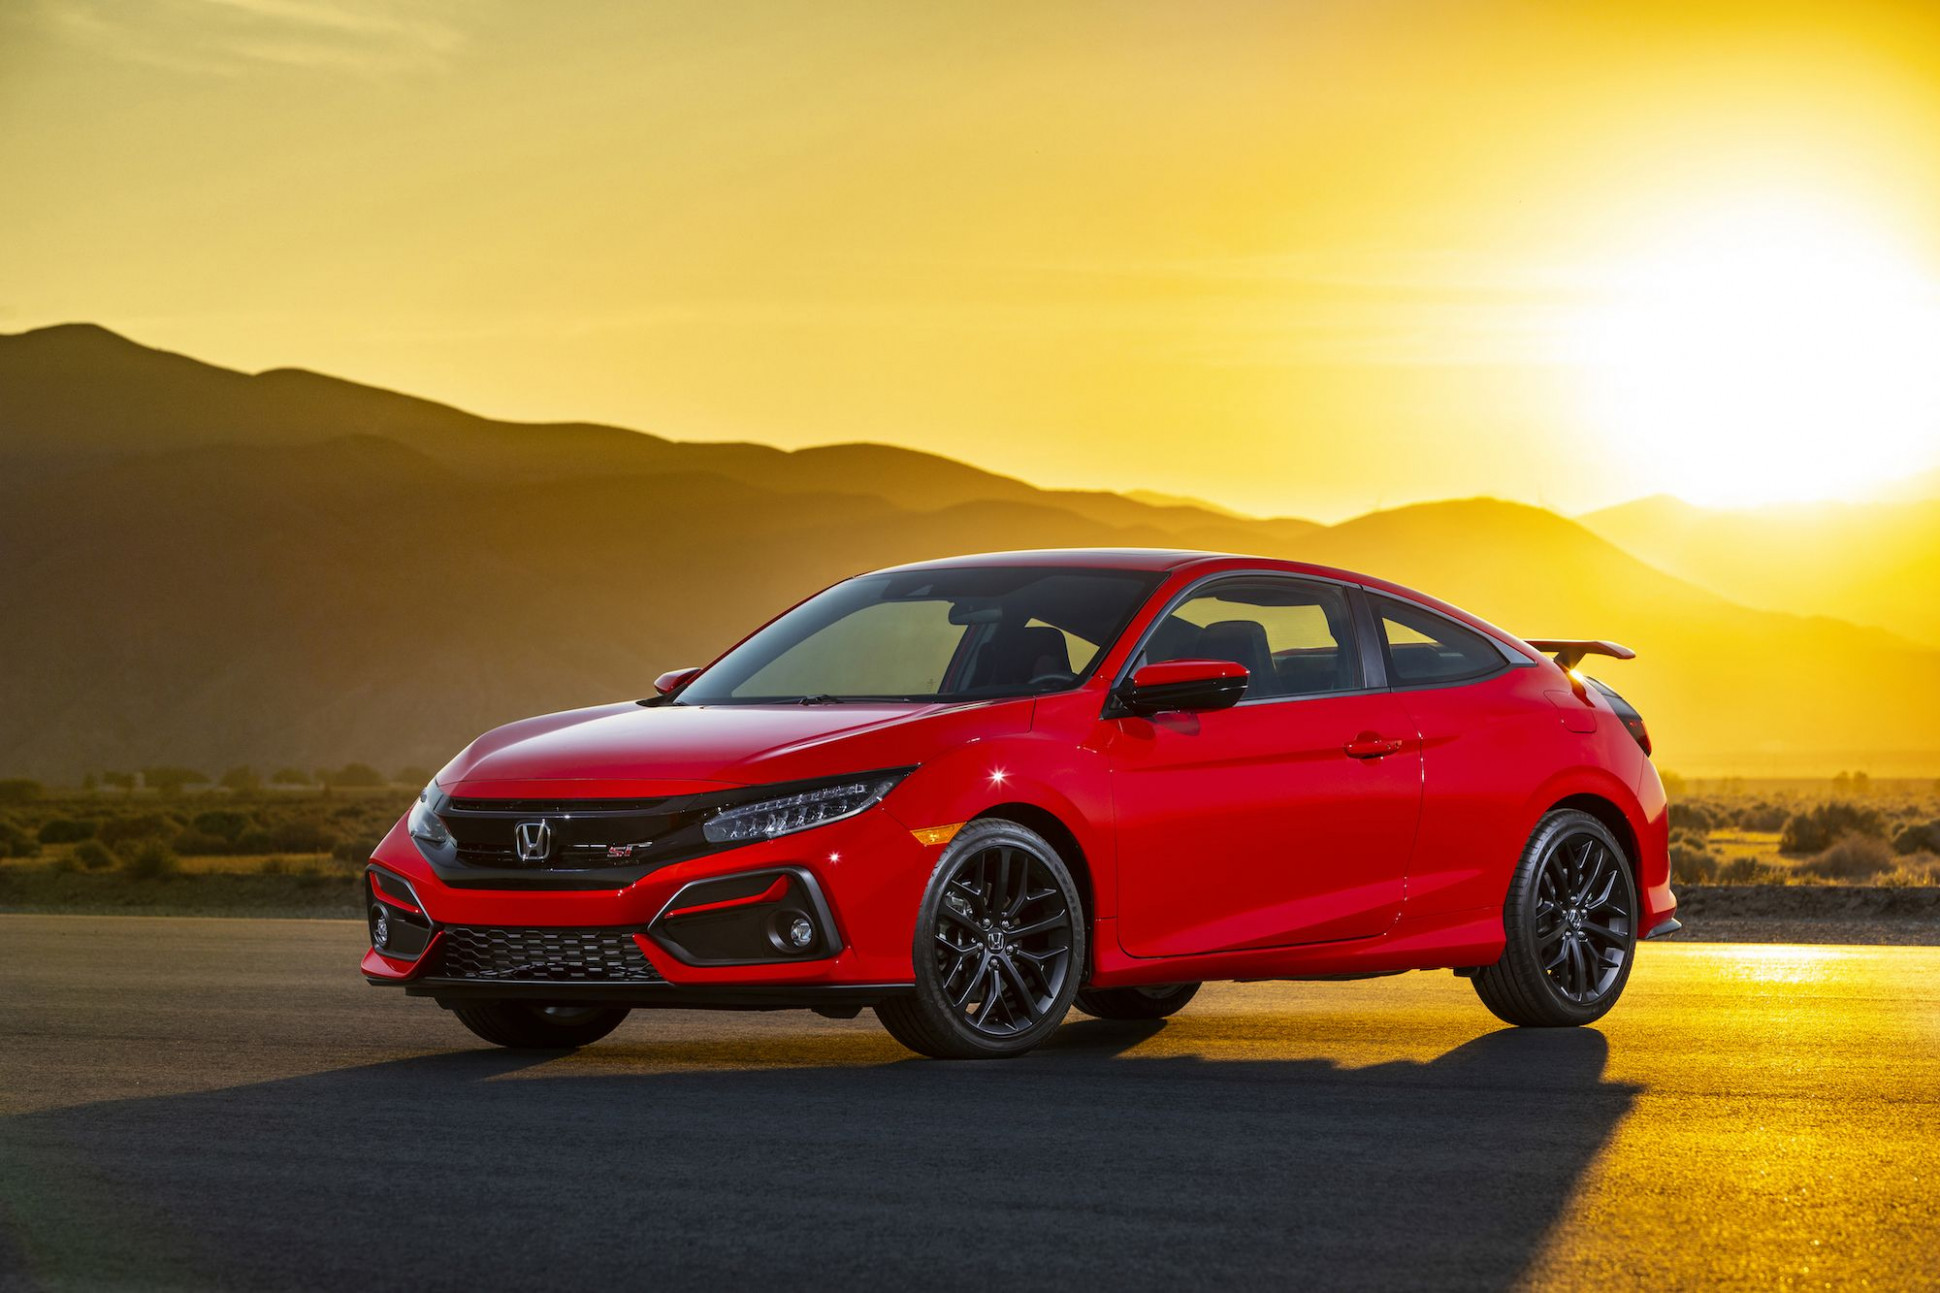 12 Honda Civic Si Review, Pricing, and Specs